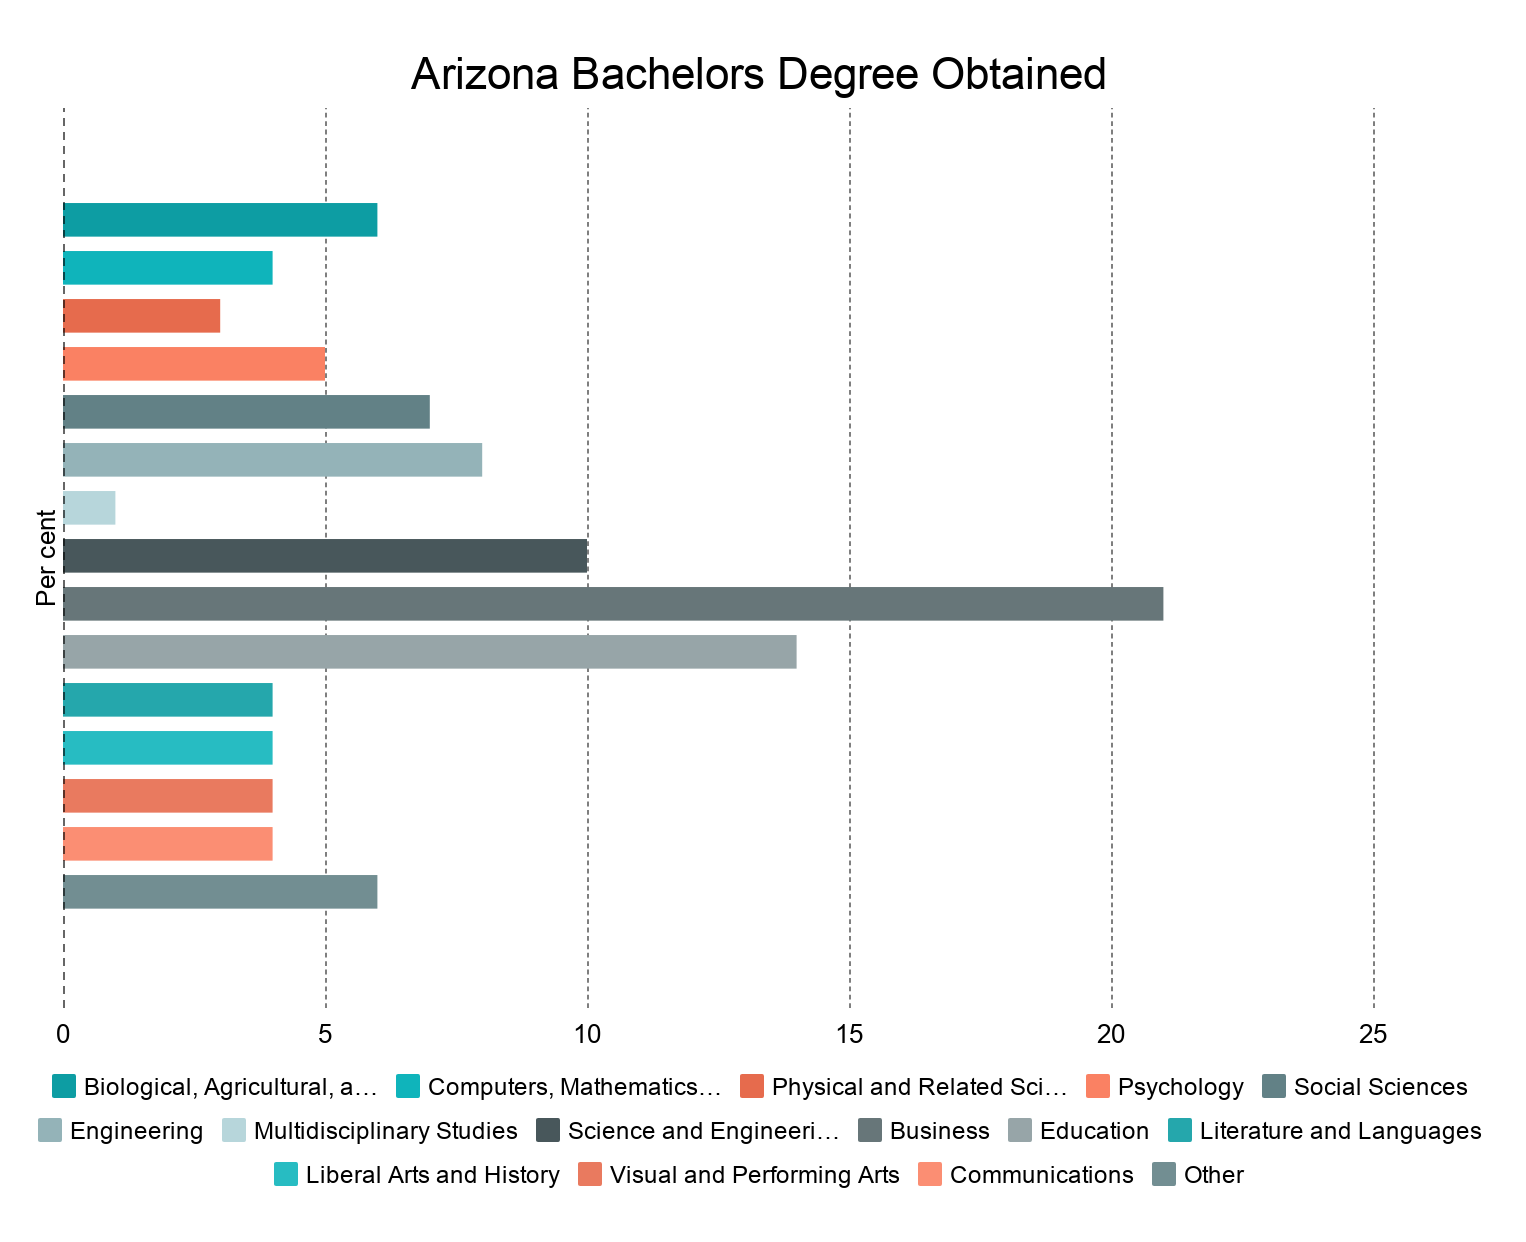 Quality of higher education in Arizona